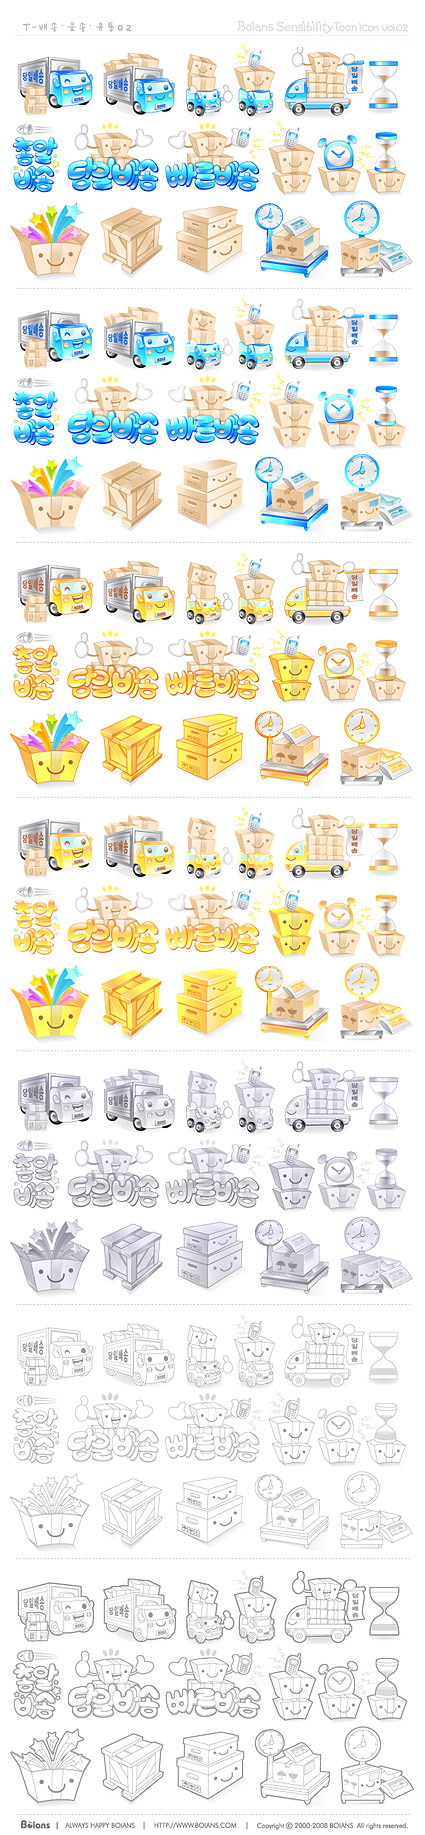 weight train three-dimensional star telephone shipping packing Libra funnel freight express cute carton car